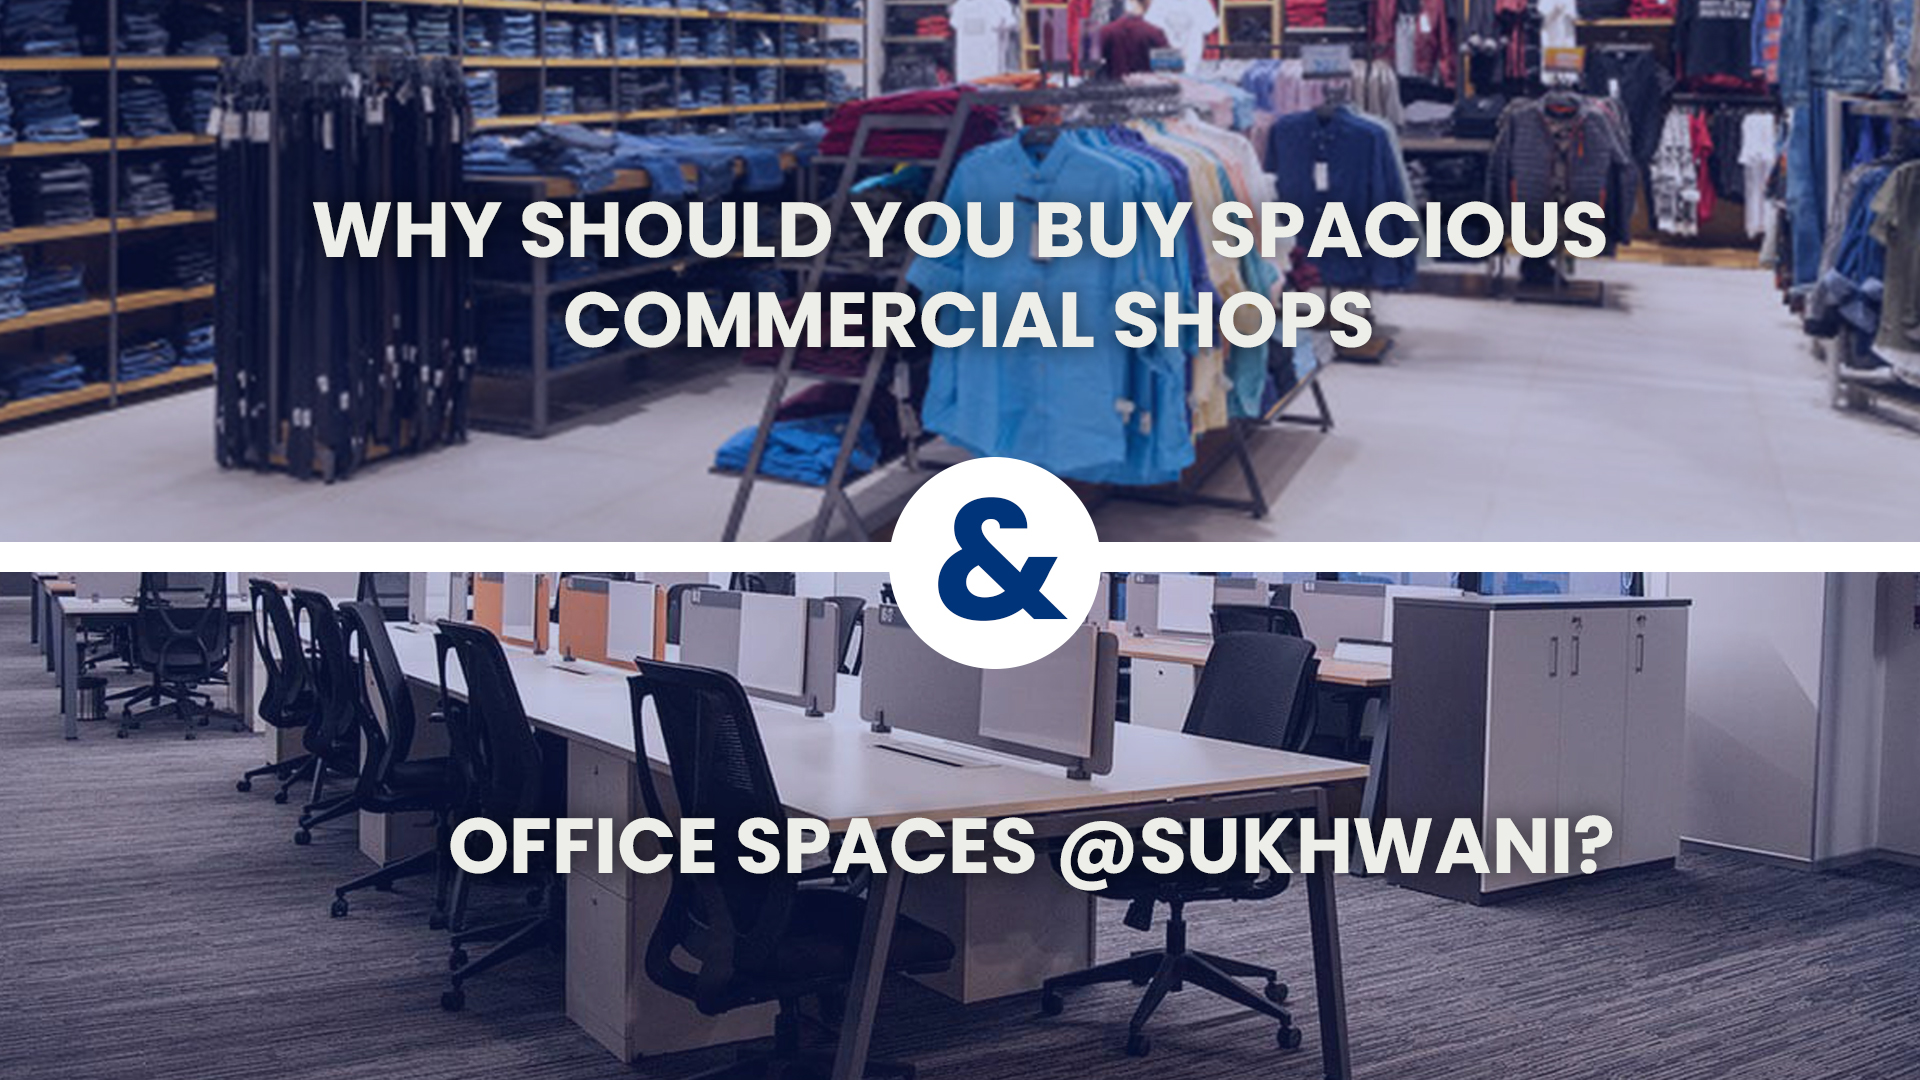 Why buy spacious commercial shops and office spaces at Sukhwani?